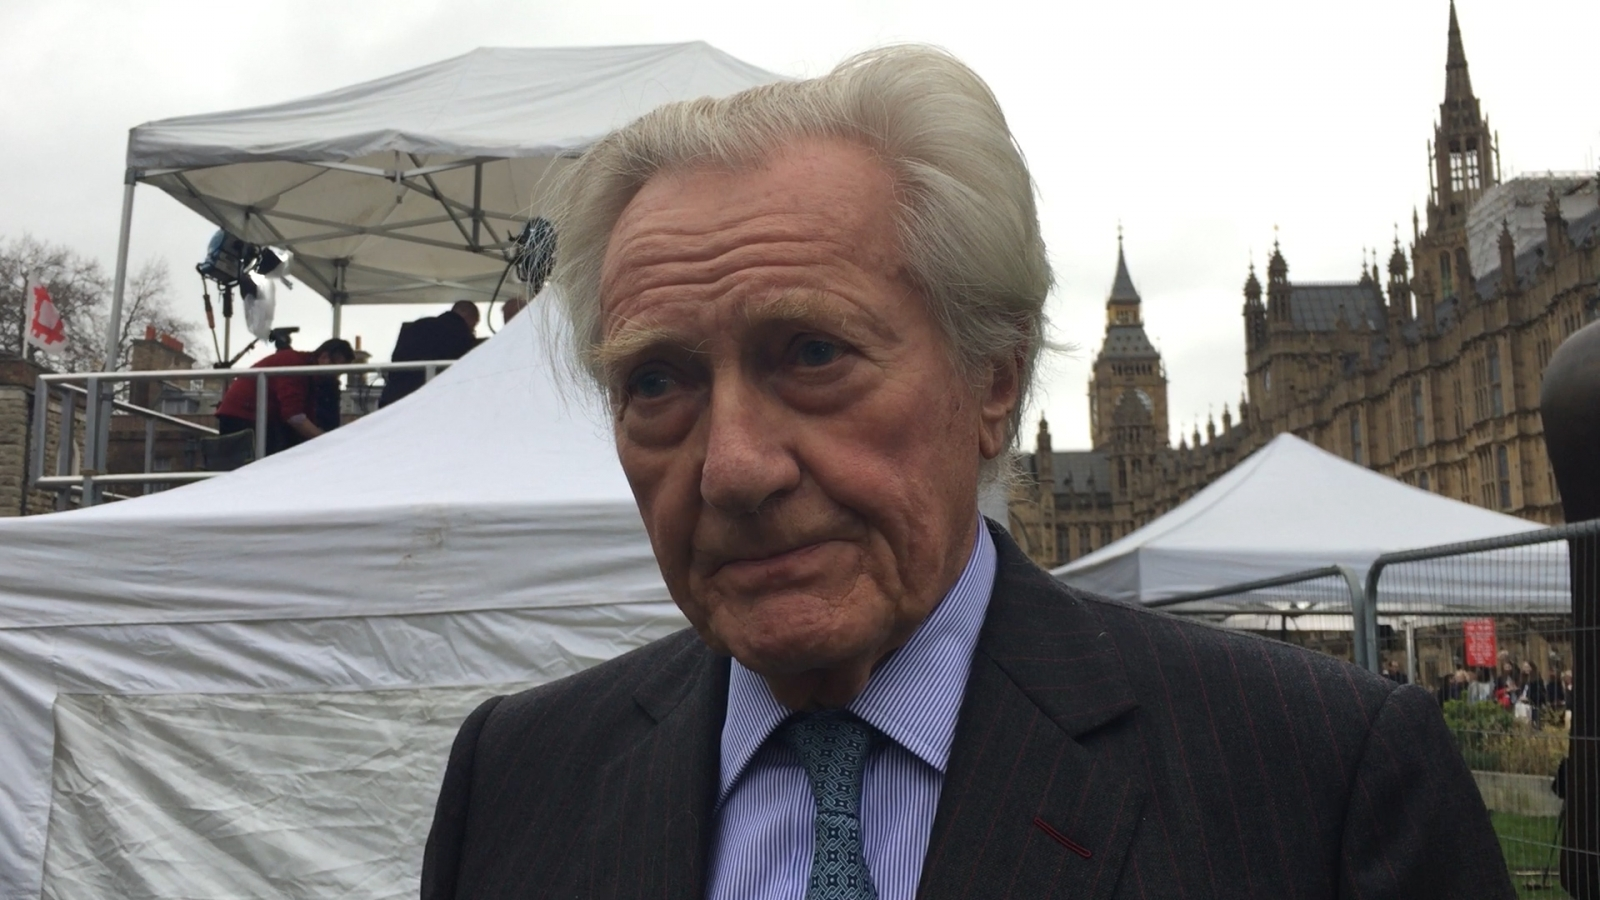 Lord Michael Heseltine: Brexit 'spits in the wind' of every Conservative prime minister